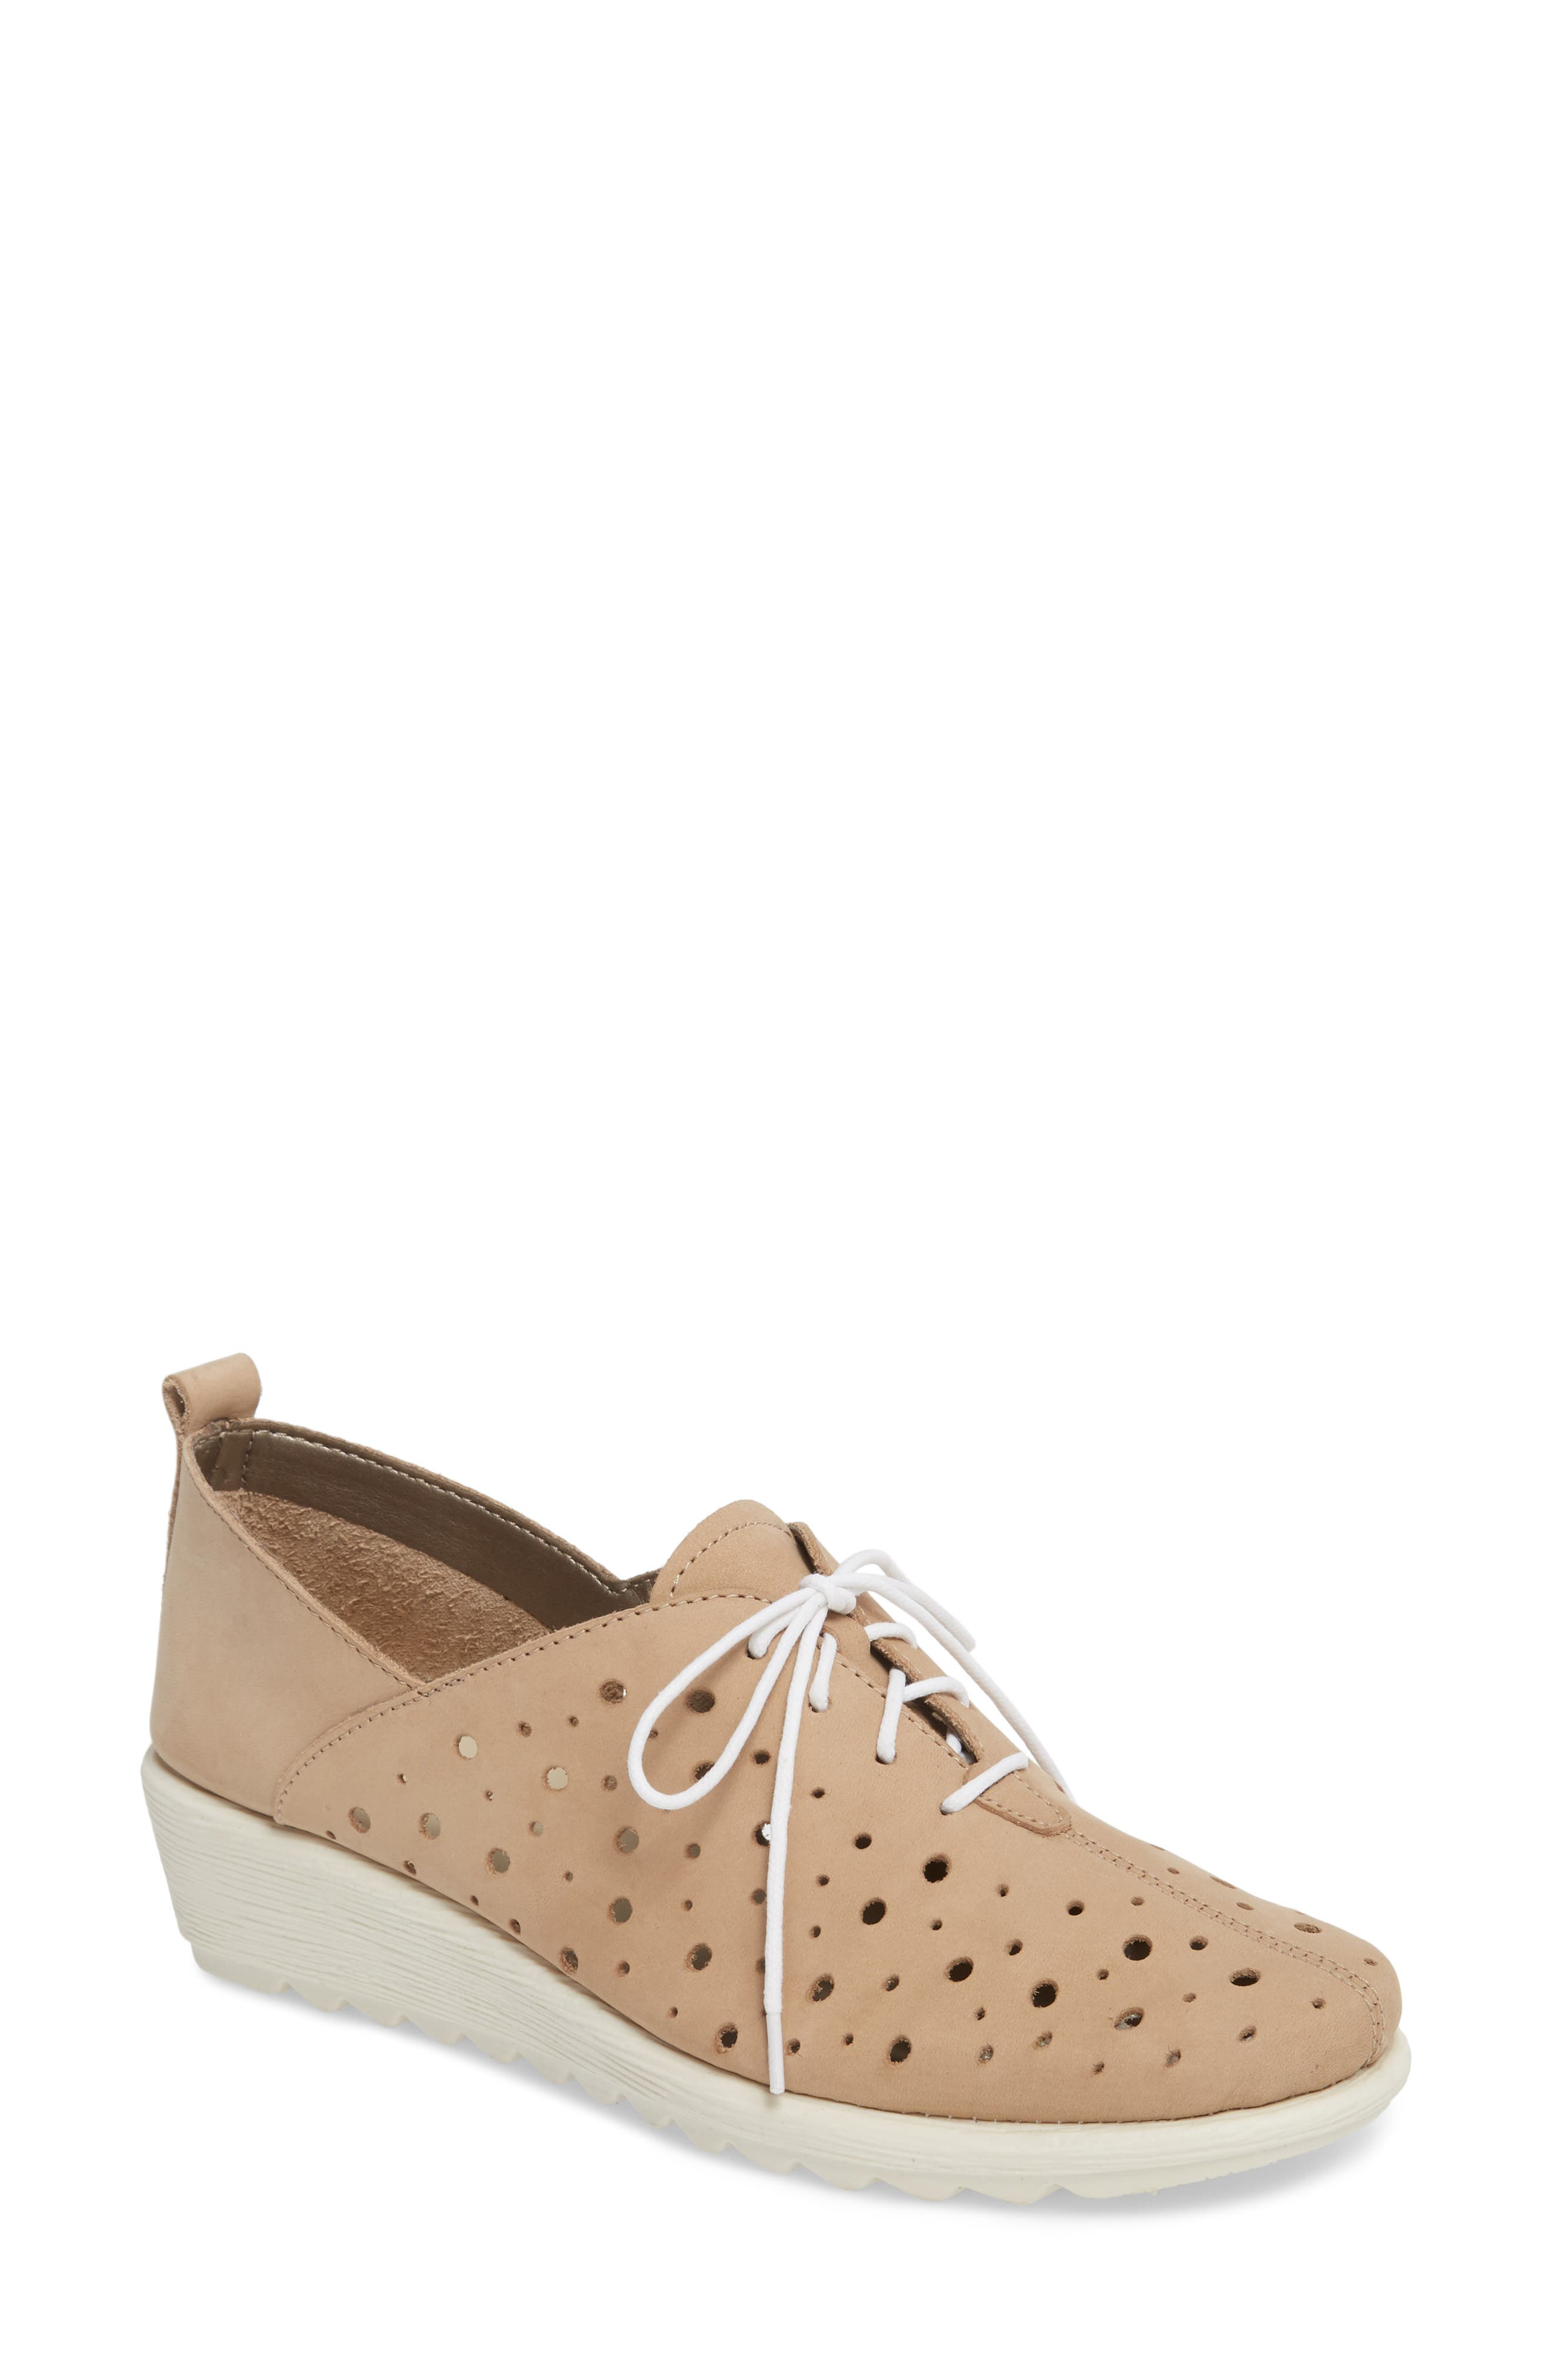 The FLEXX 'Run Crazy Two' Perforated Wedge Sneaker (Women)